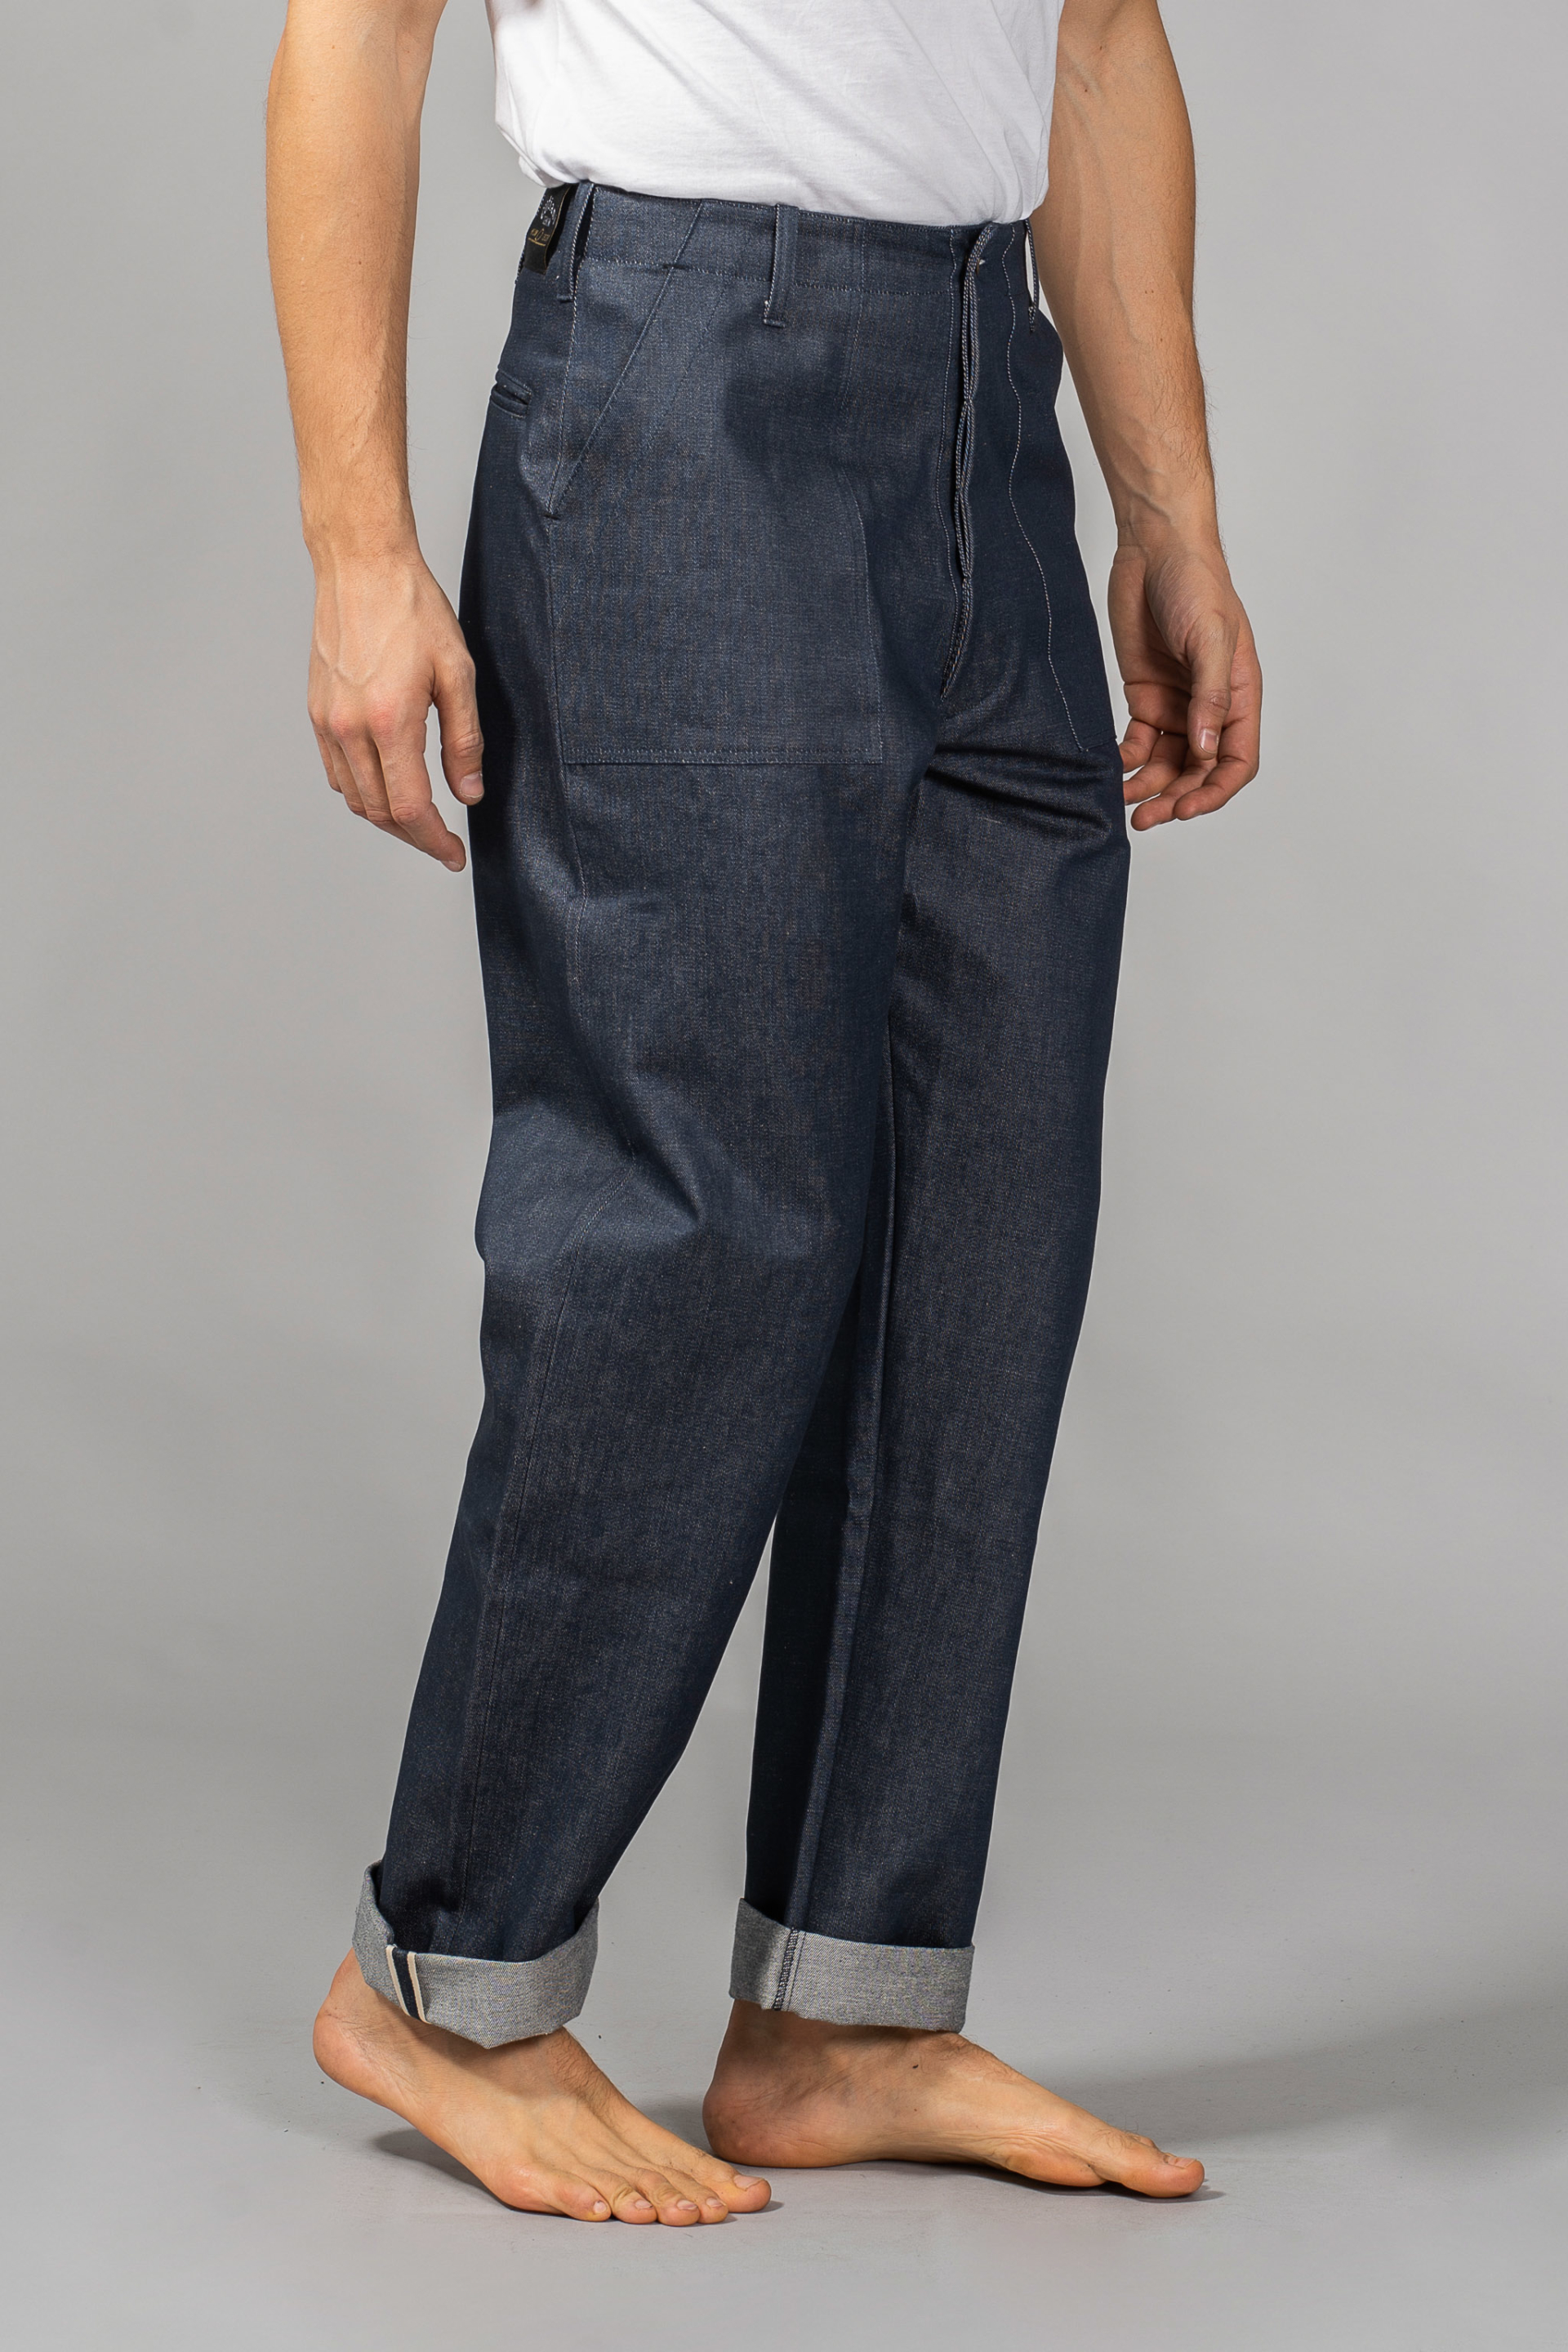 denim jeans ticino work pant relaxed matias candiani denim store